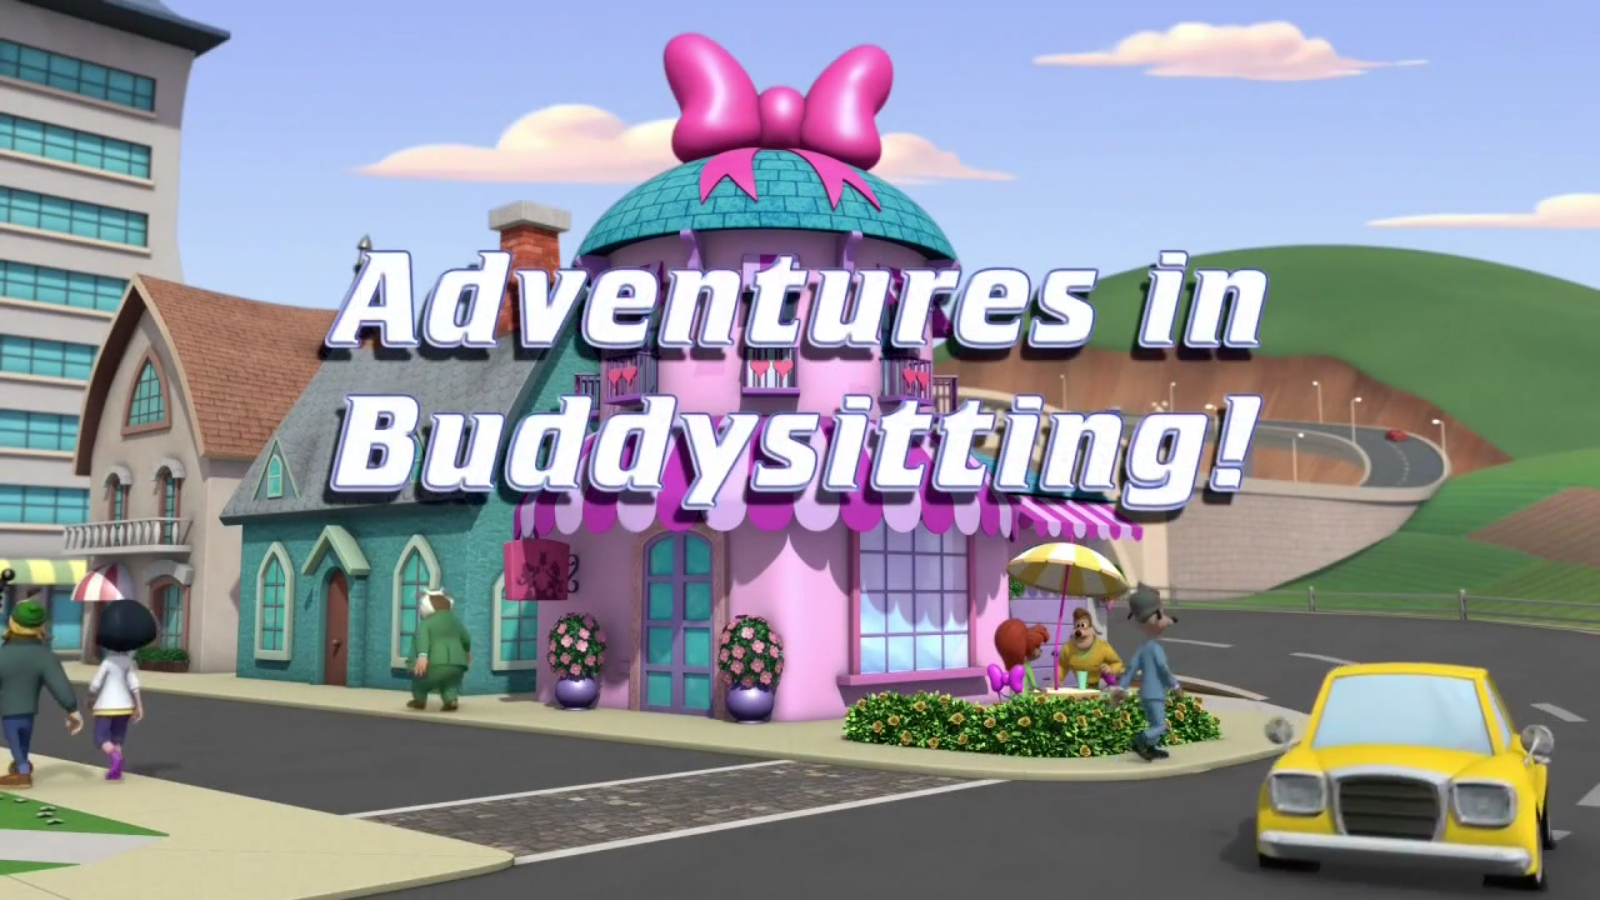 Adventures in Buddysitting!